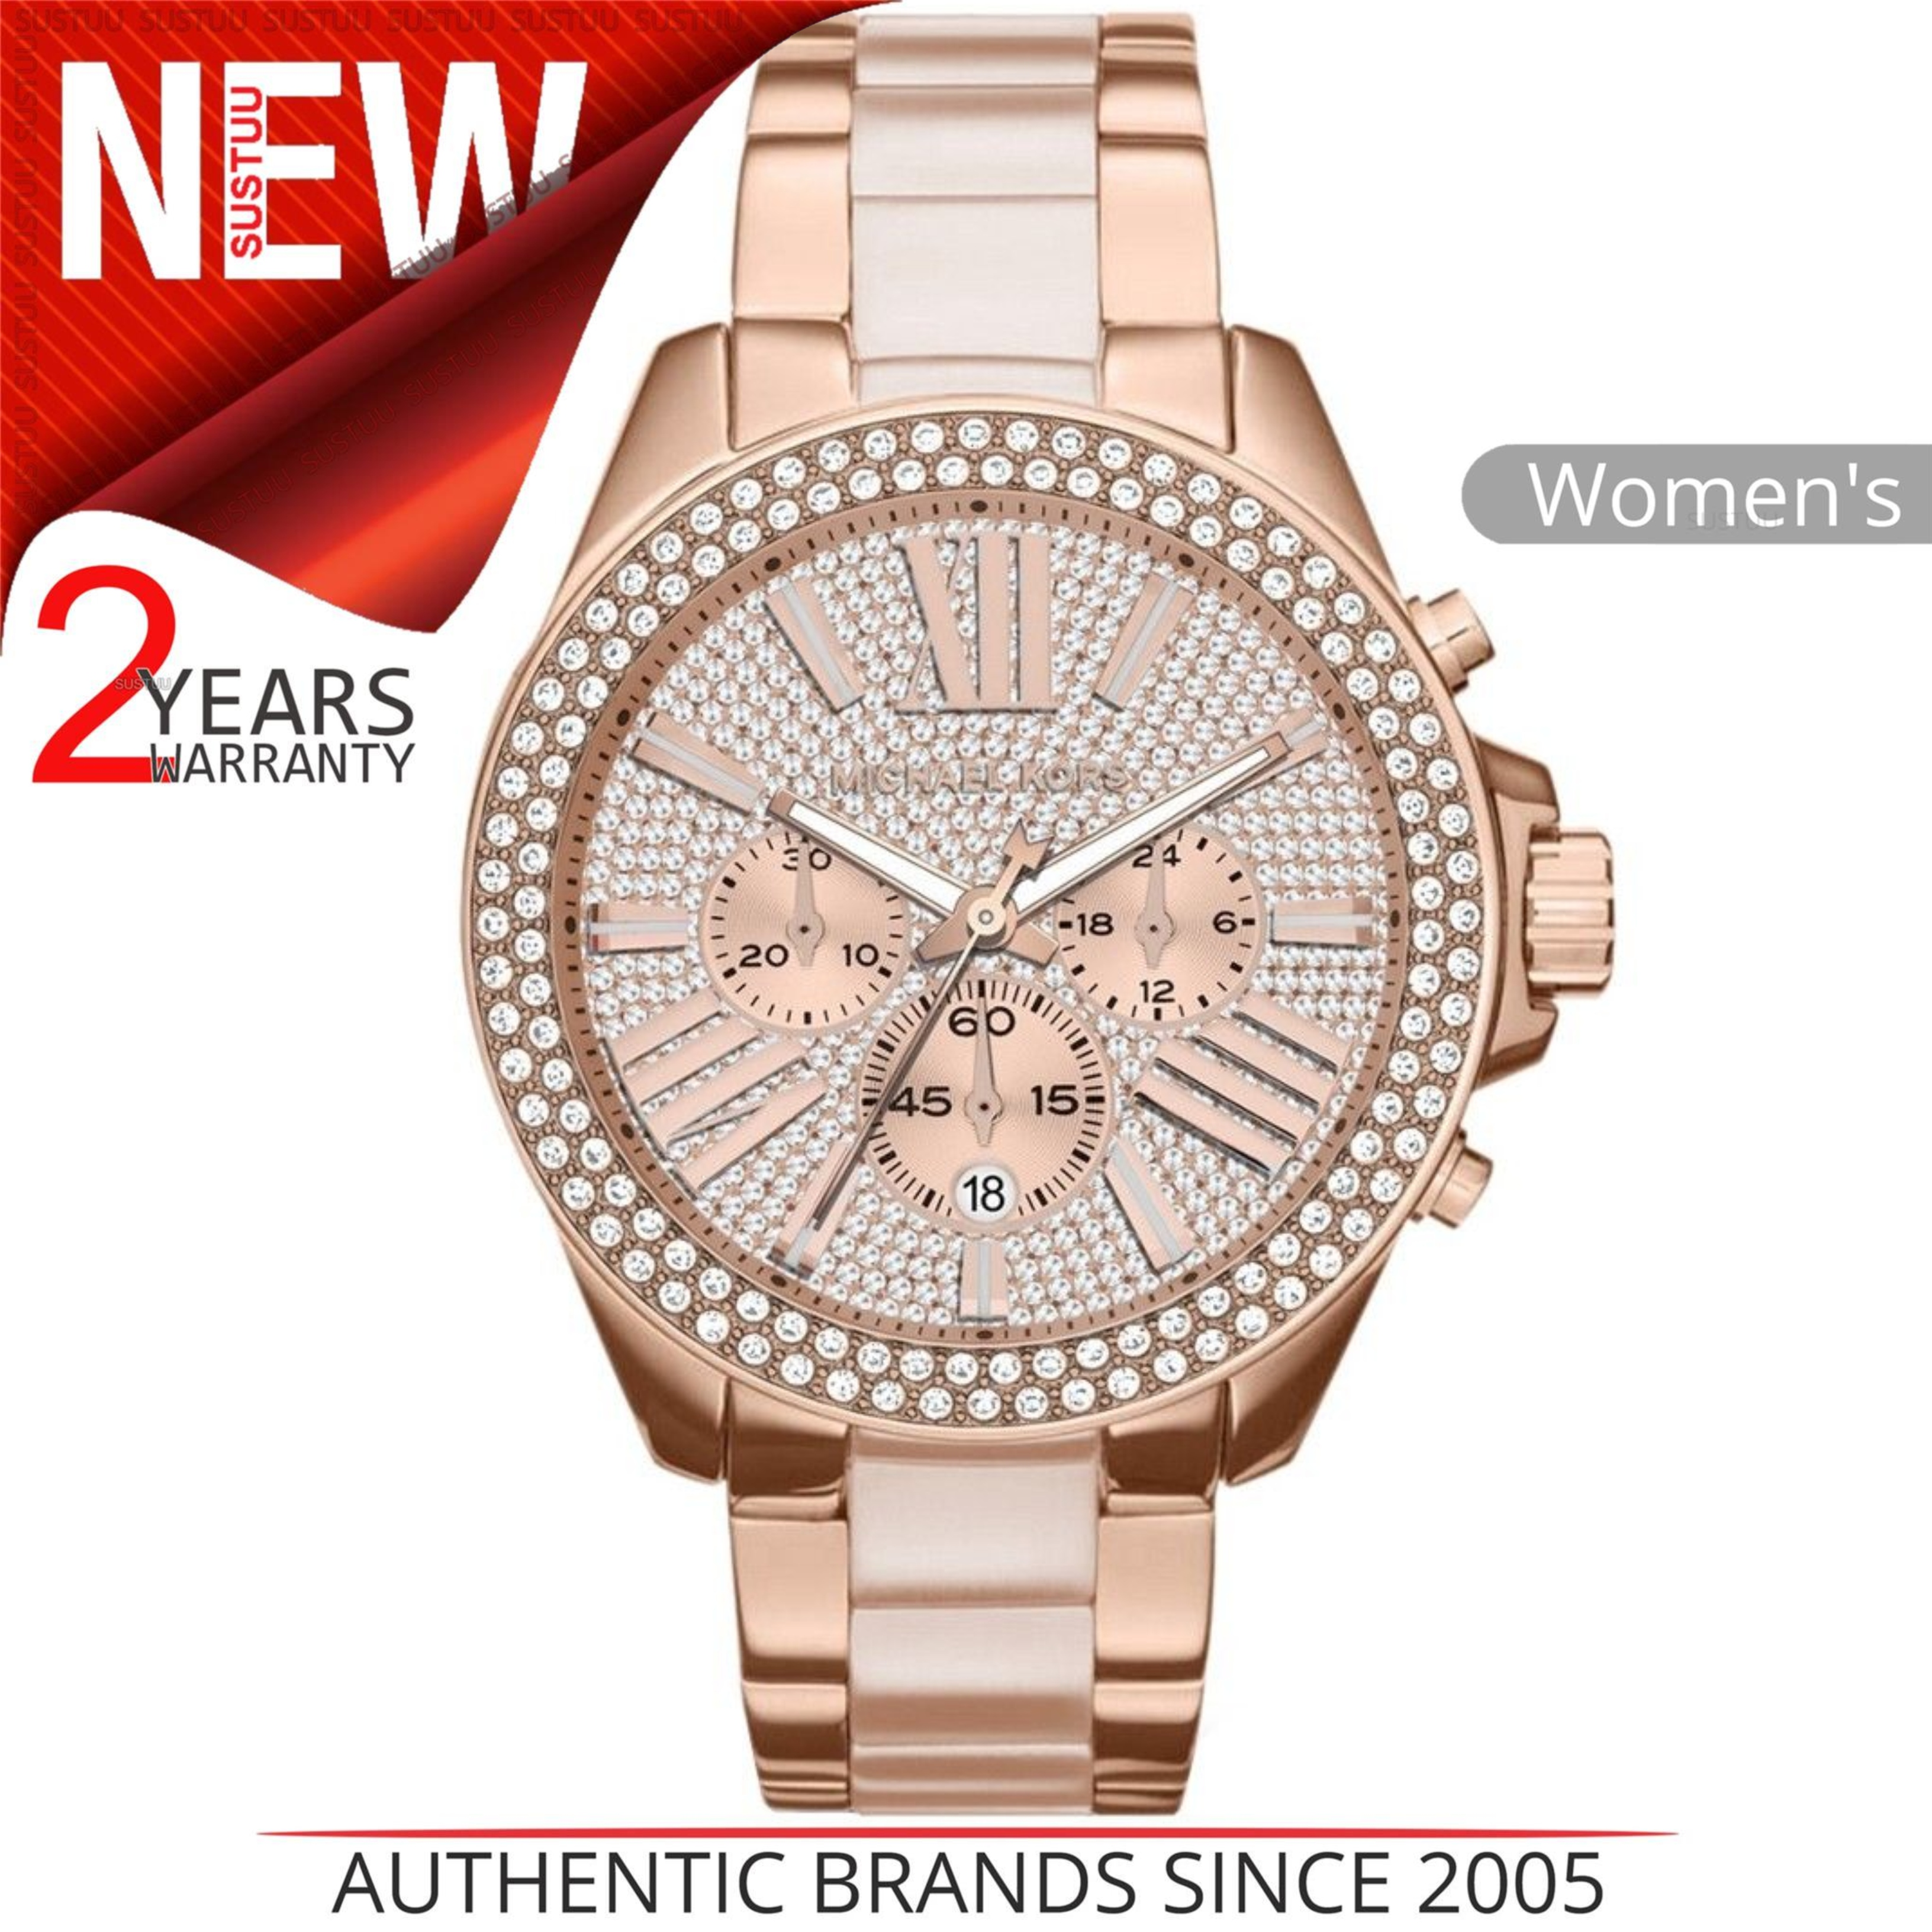 Michael Kors Wren Ladies Watch|Pavé Crystal Rose Gold Dial|Bracelet Band|MK6096